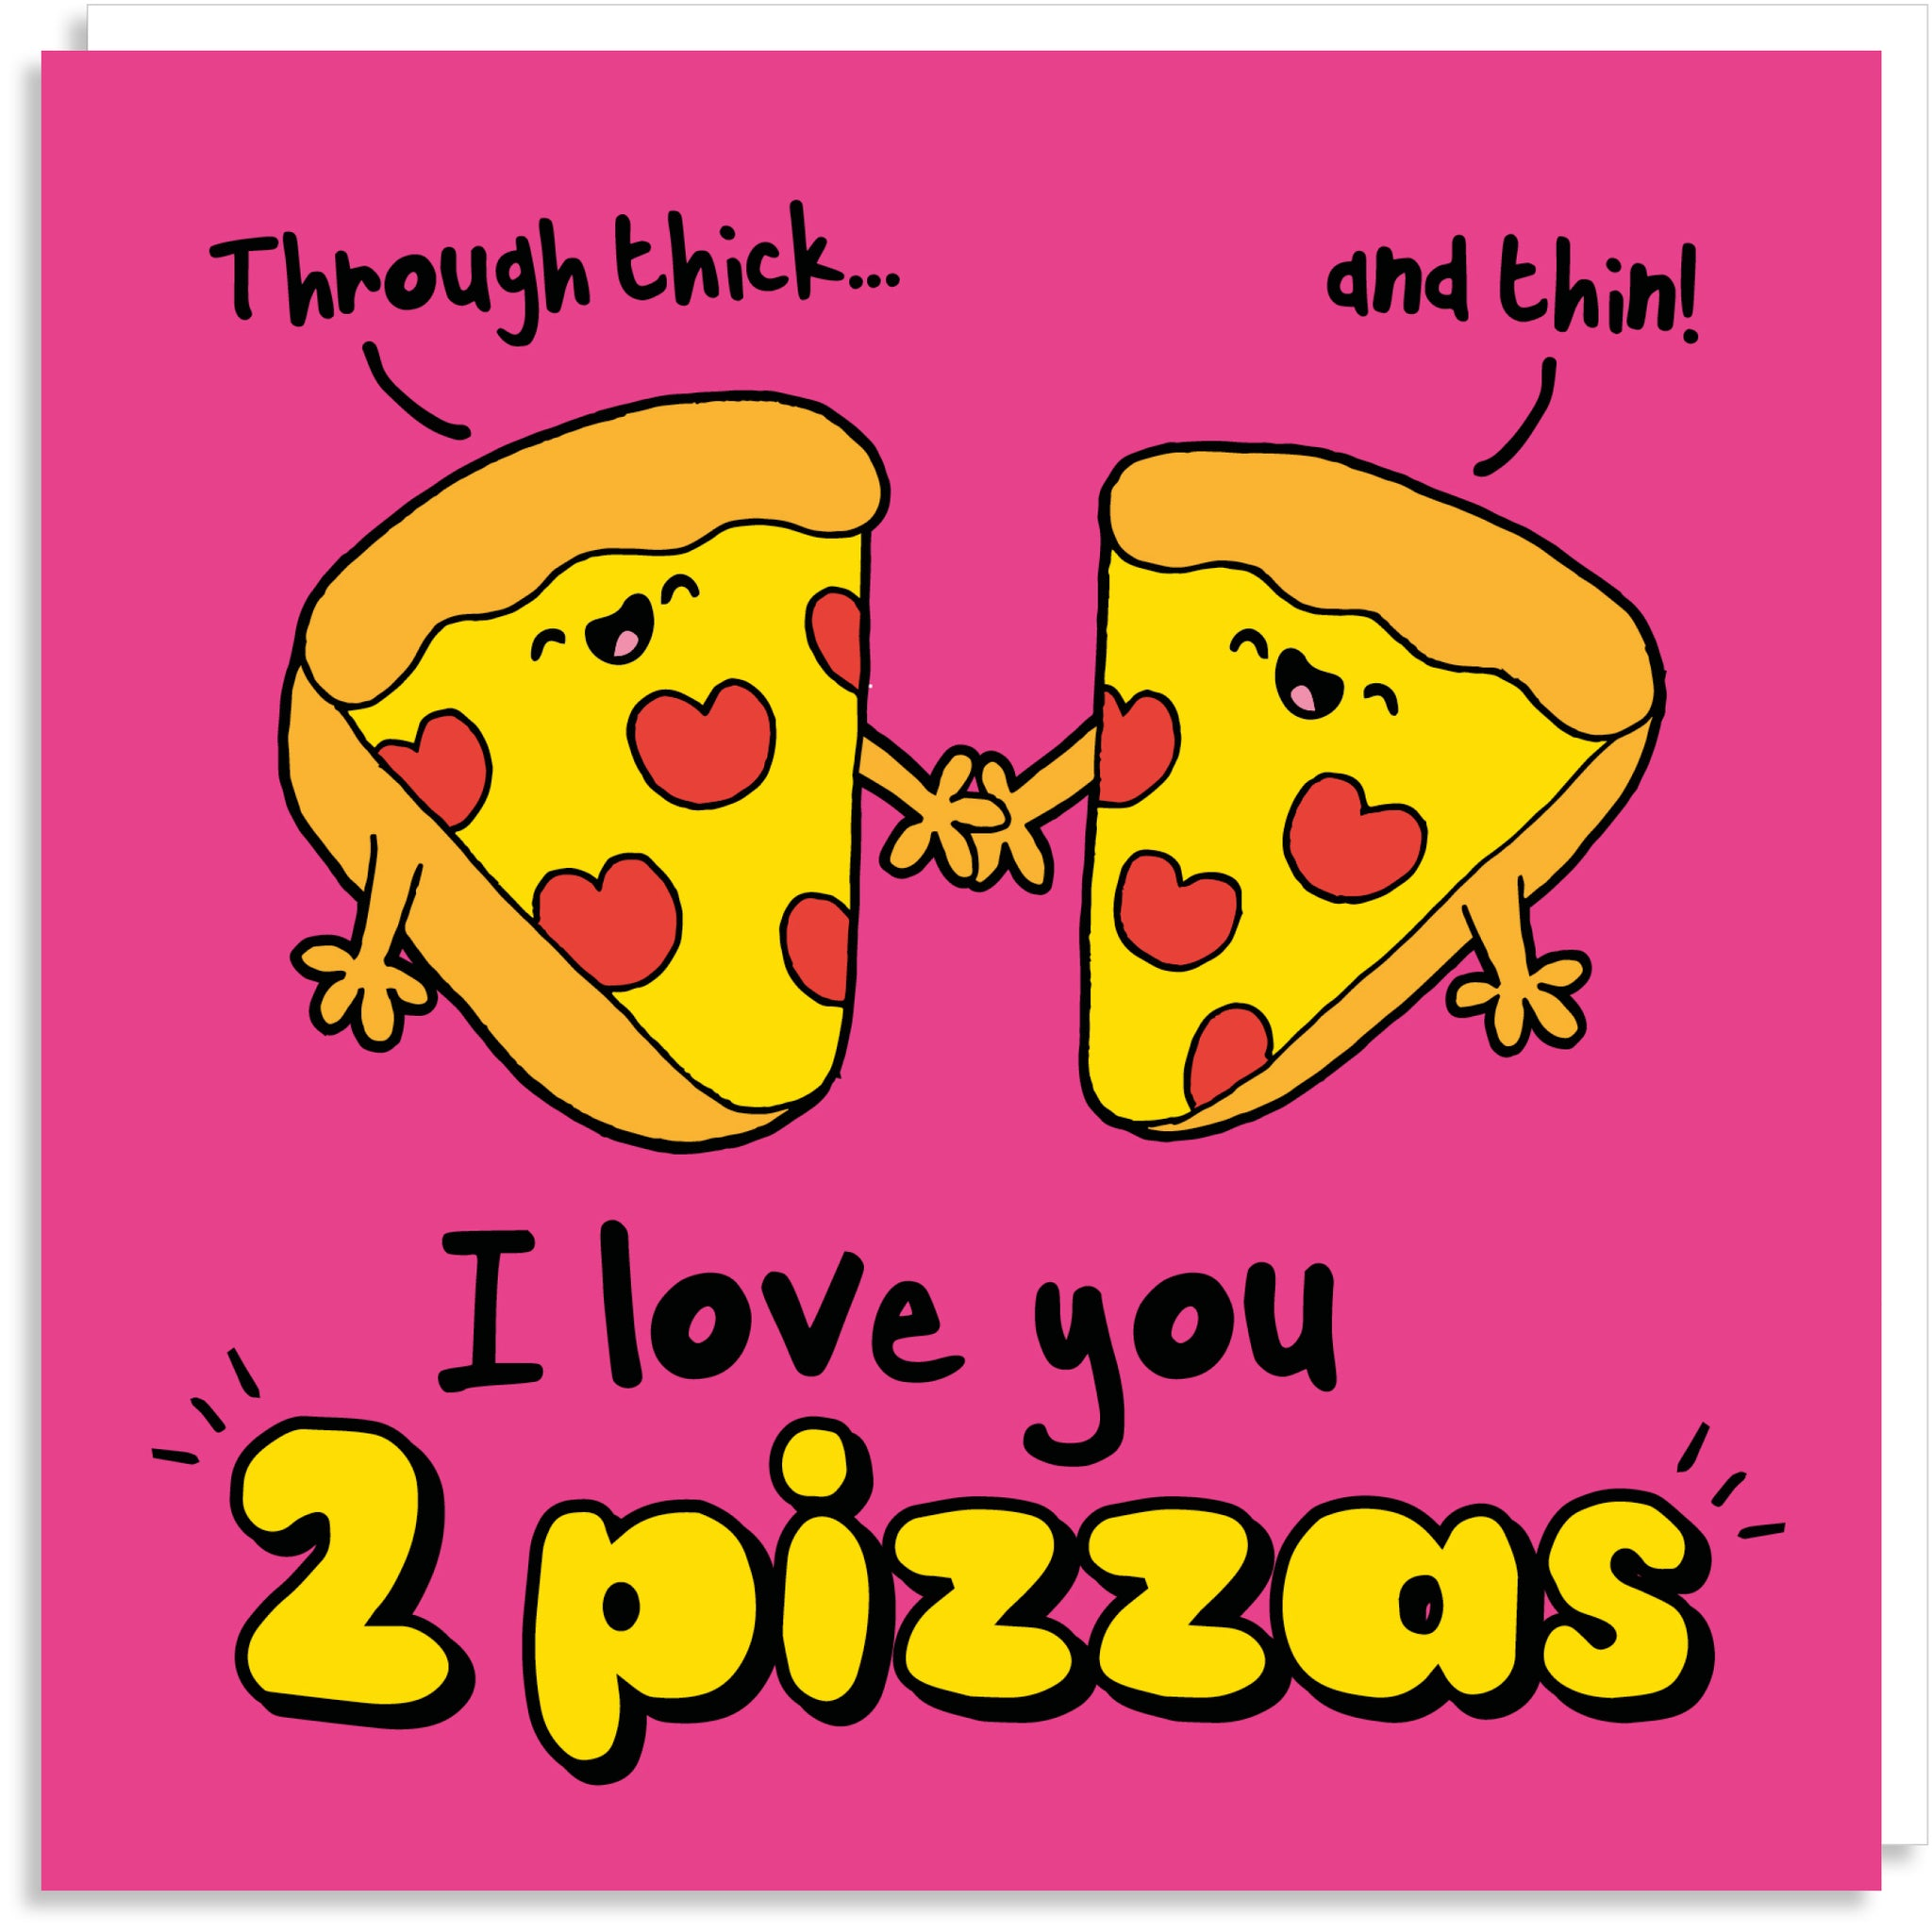 I love you pizza Valentine's card